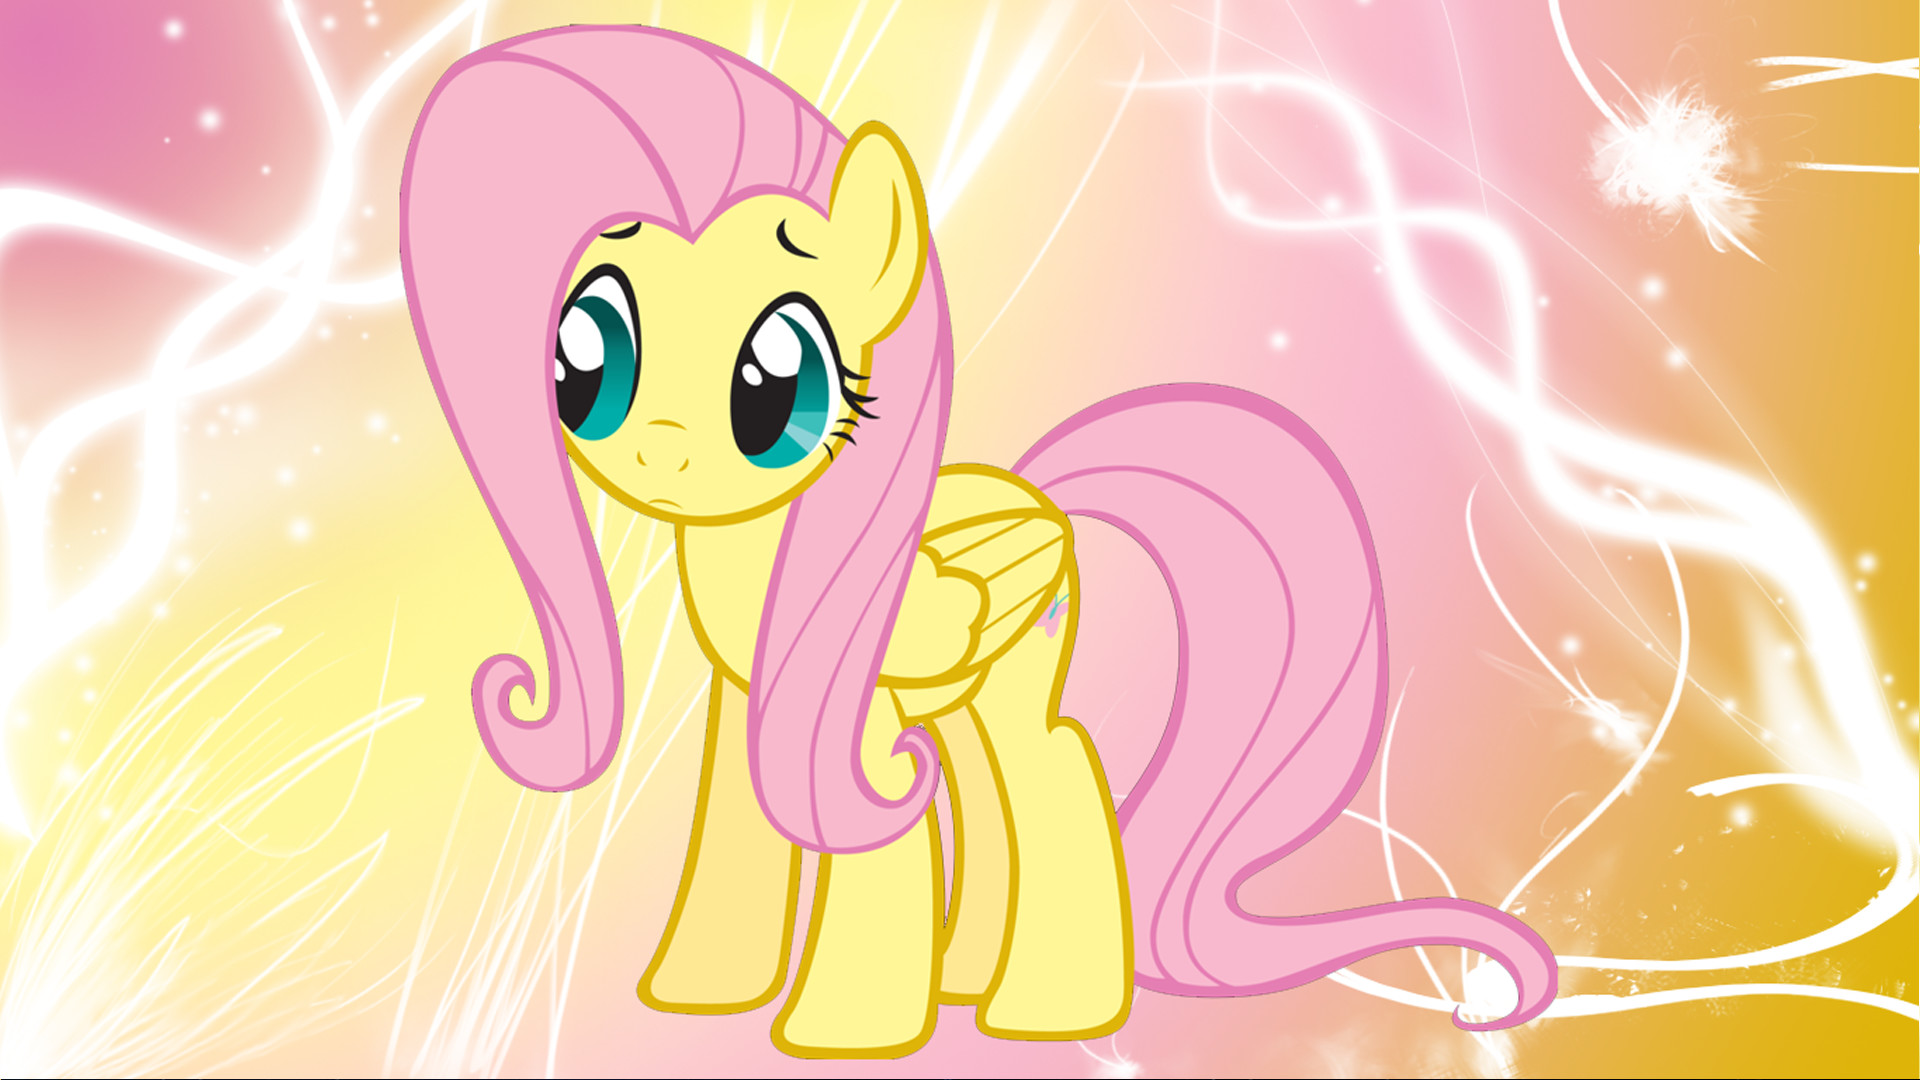 1920x1080 Mlp Wallpaper Hd Fluttershy Fluttershy, wallpapers